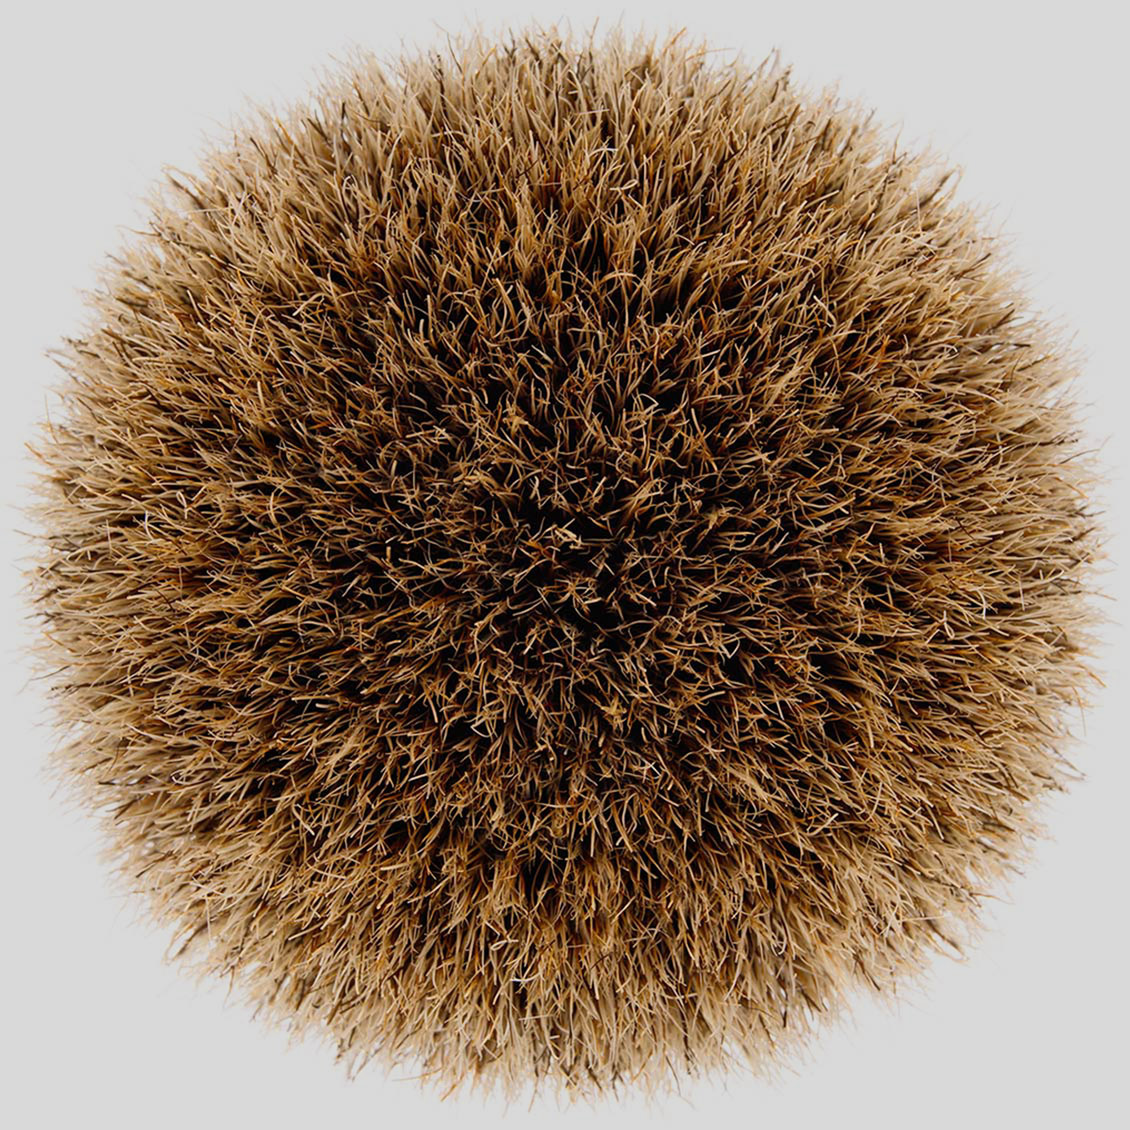 shaving-brush-2015 ©Paul Hampton Photographer Glasgow